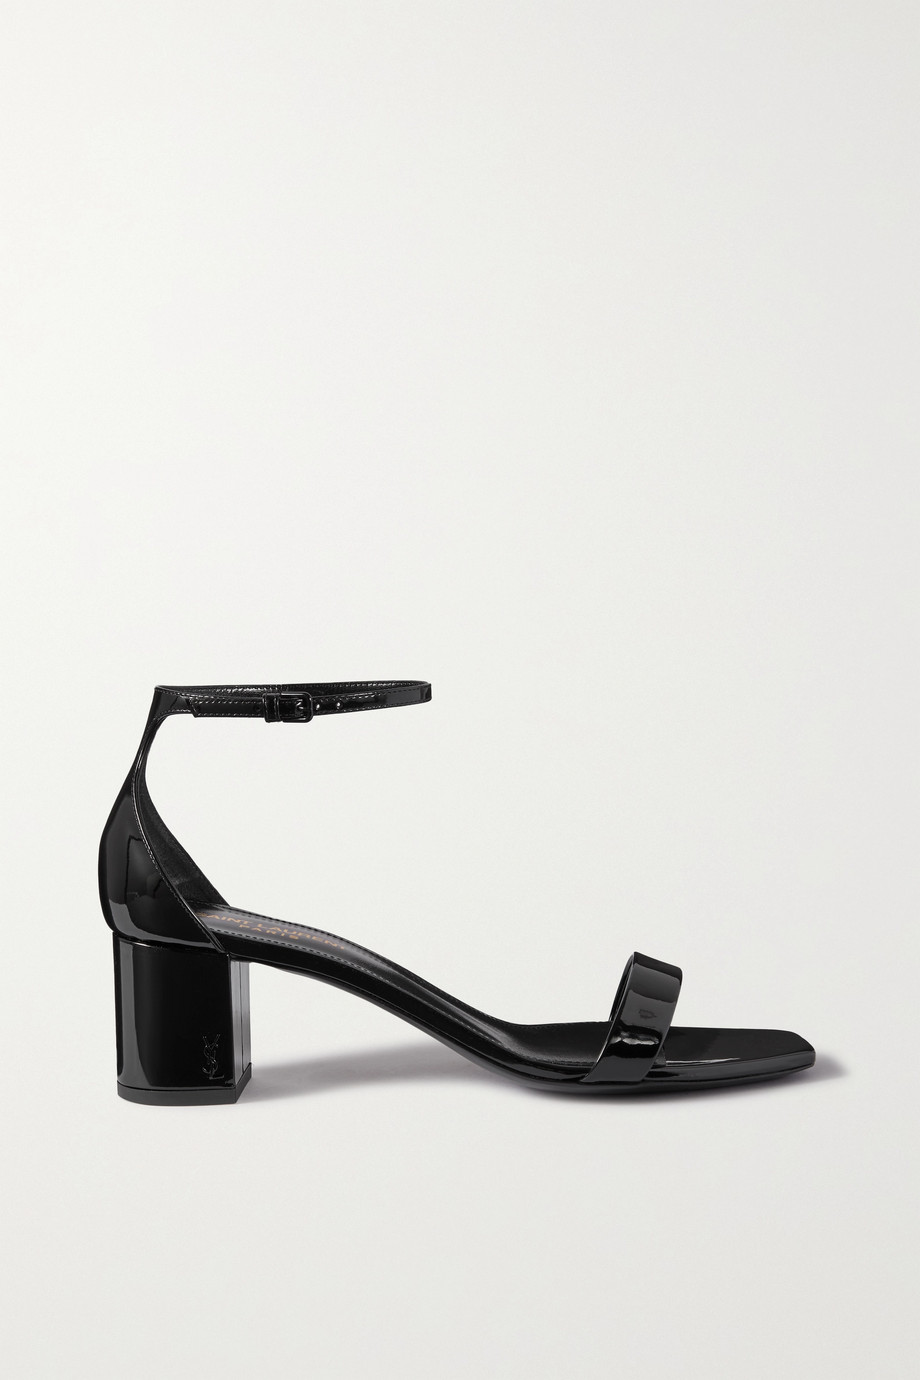 SAINT LAURENT Loulou patent-leather sandals